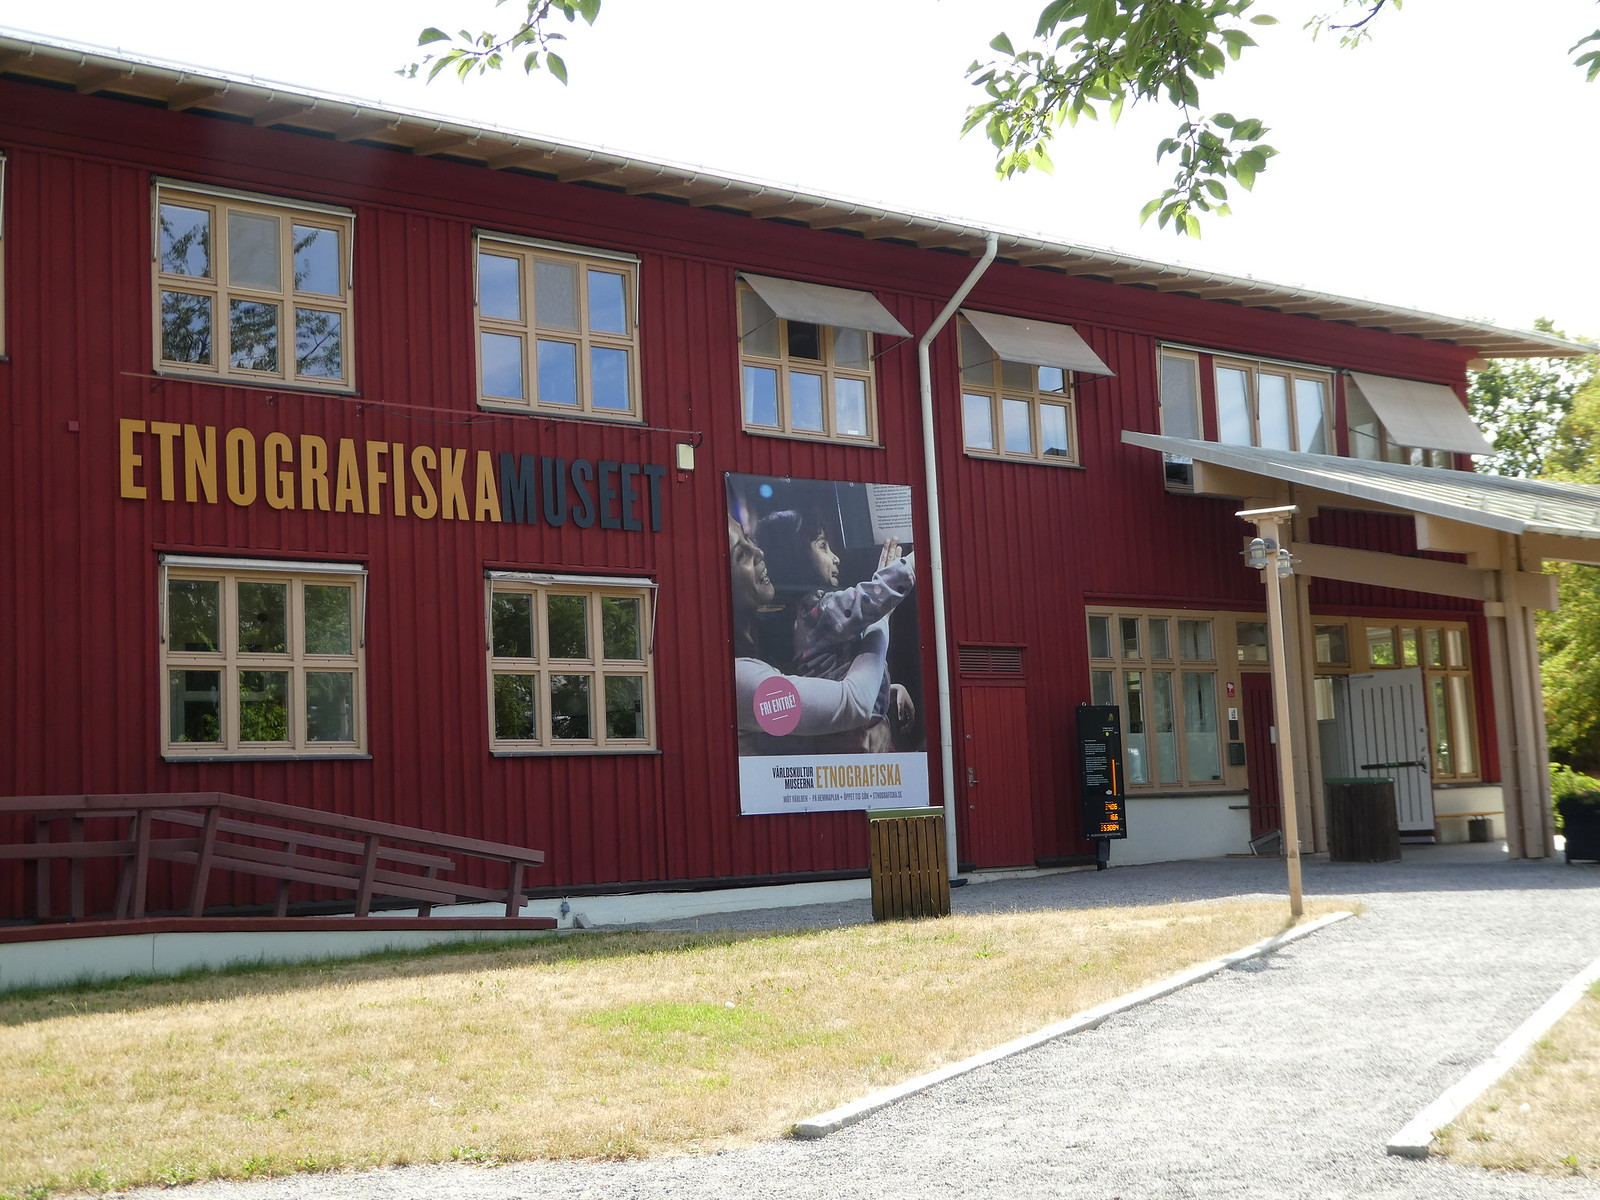 Museum of Ethnography, Stockholm